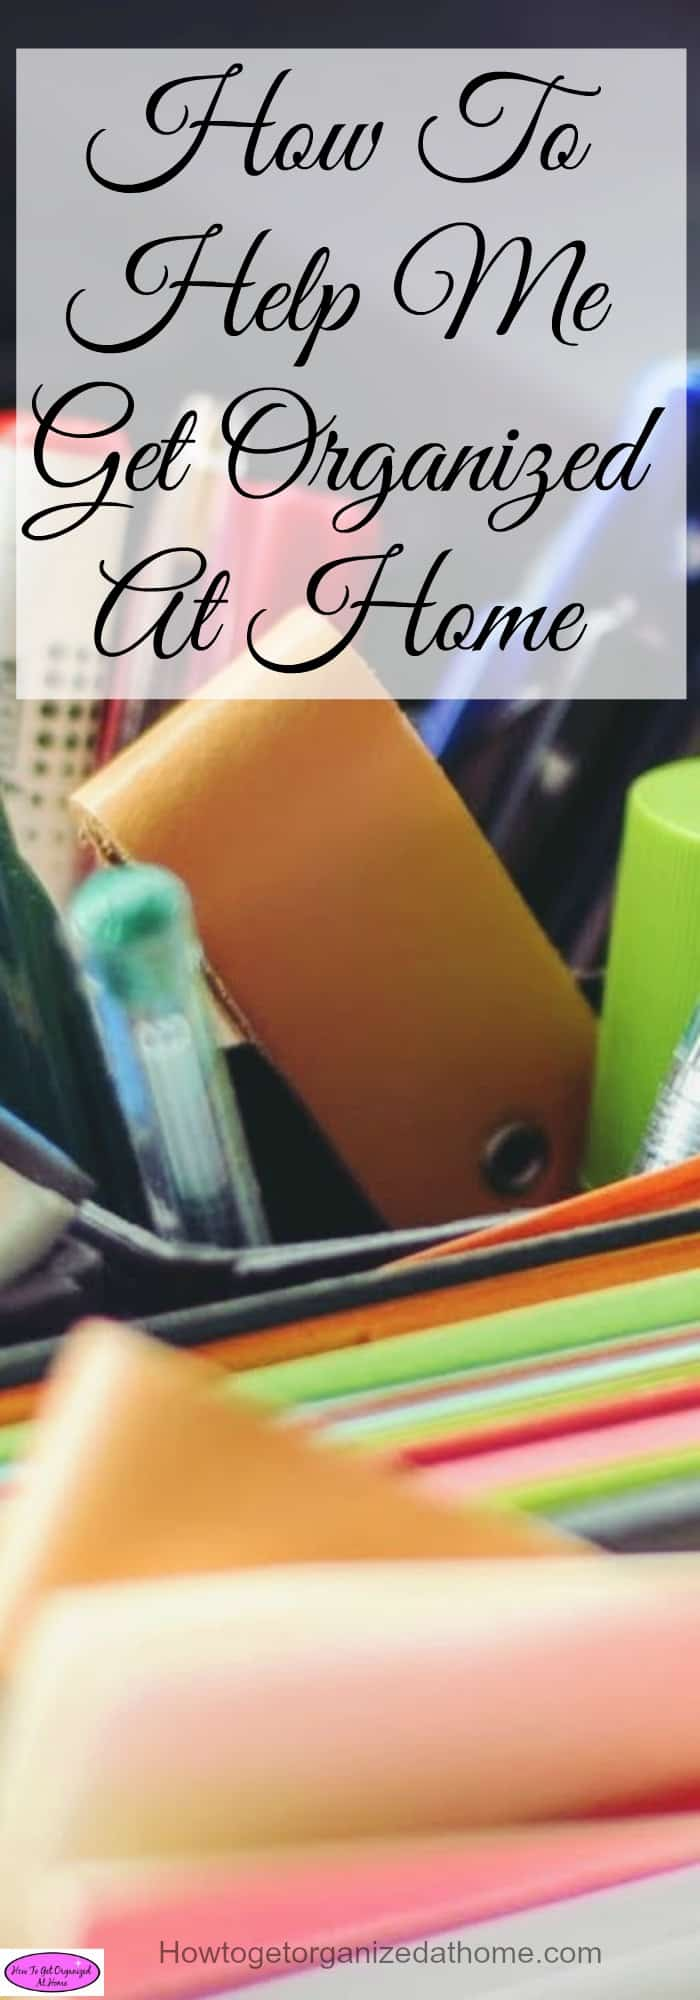 Help me get organized at home is a common question I'm asked. It isn't an easy journey but it will make your life easier in the long run.